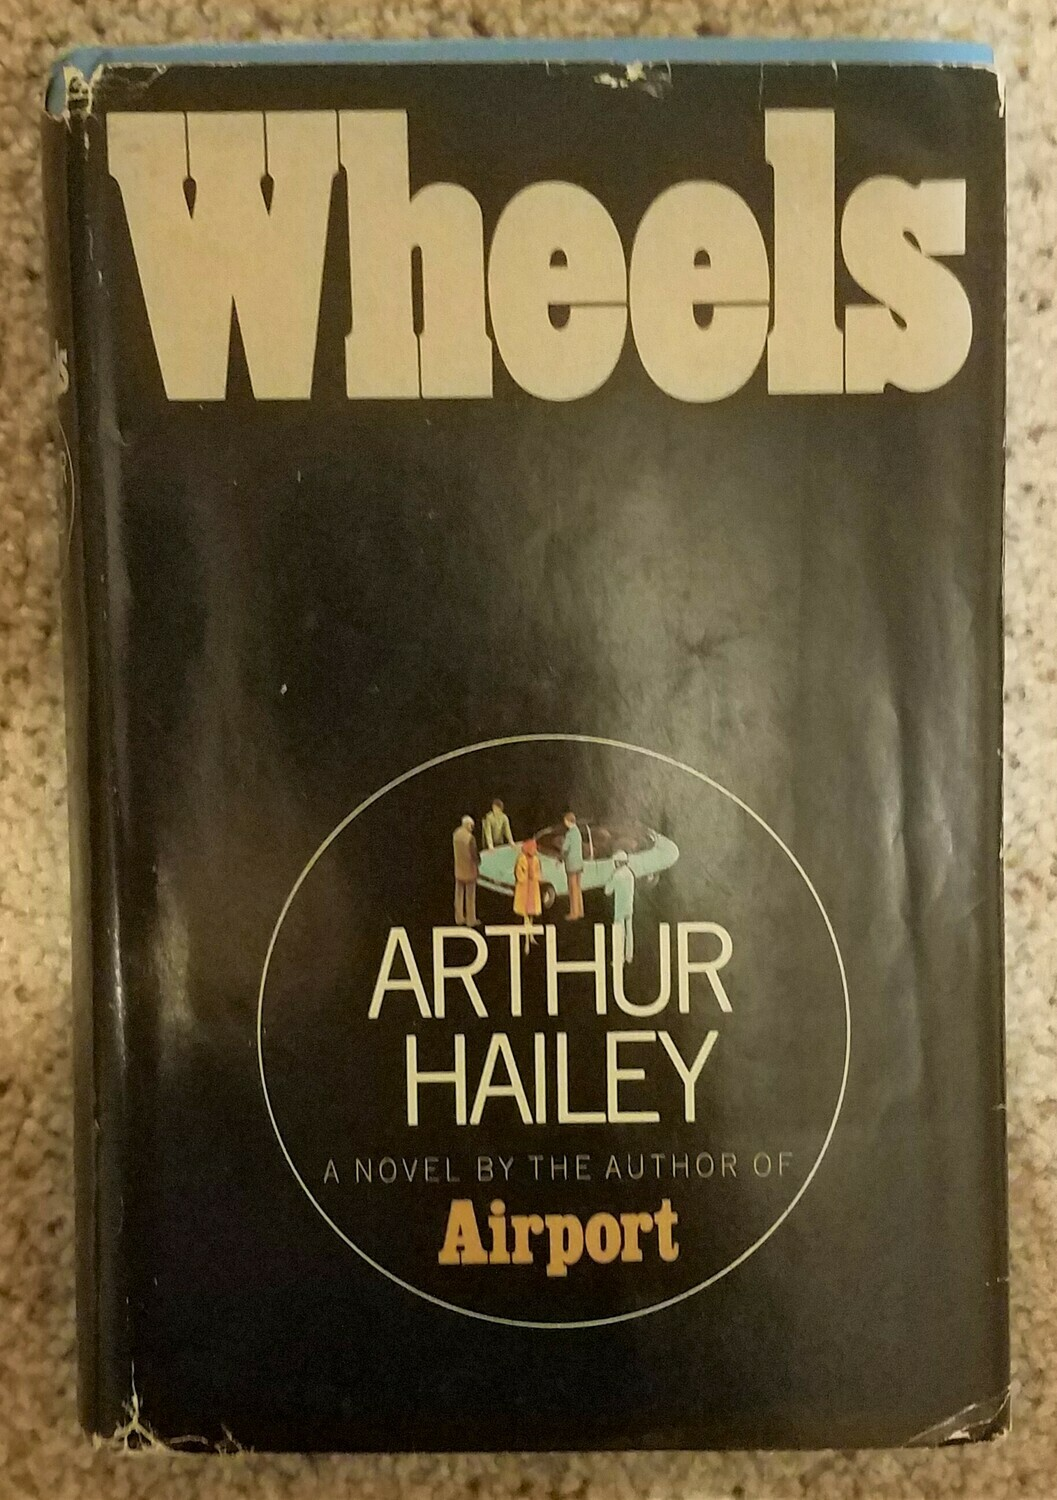 Wheels by Arthur Hailey